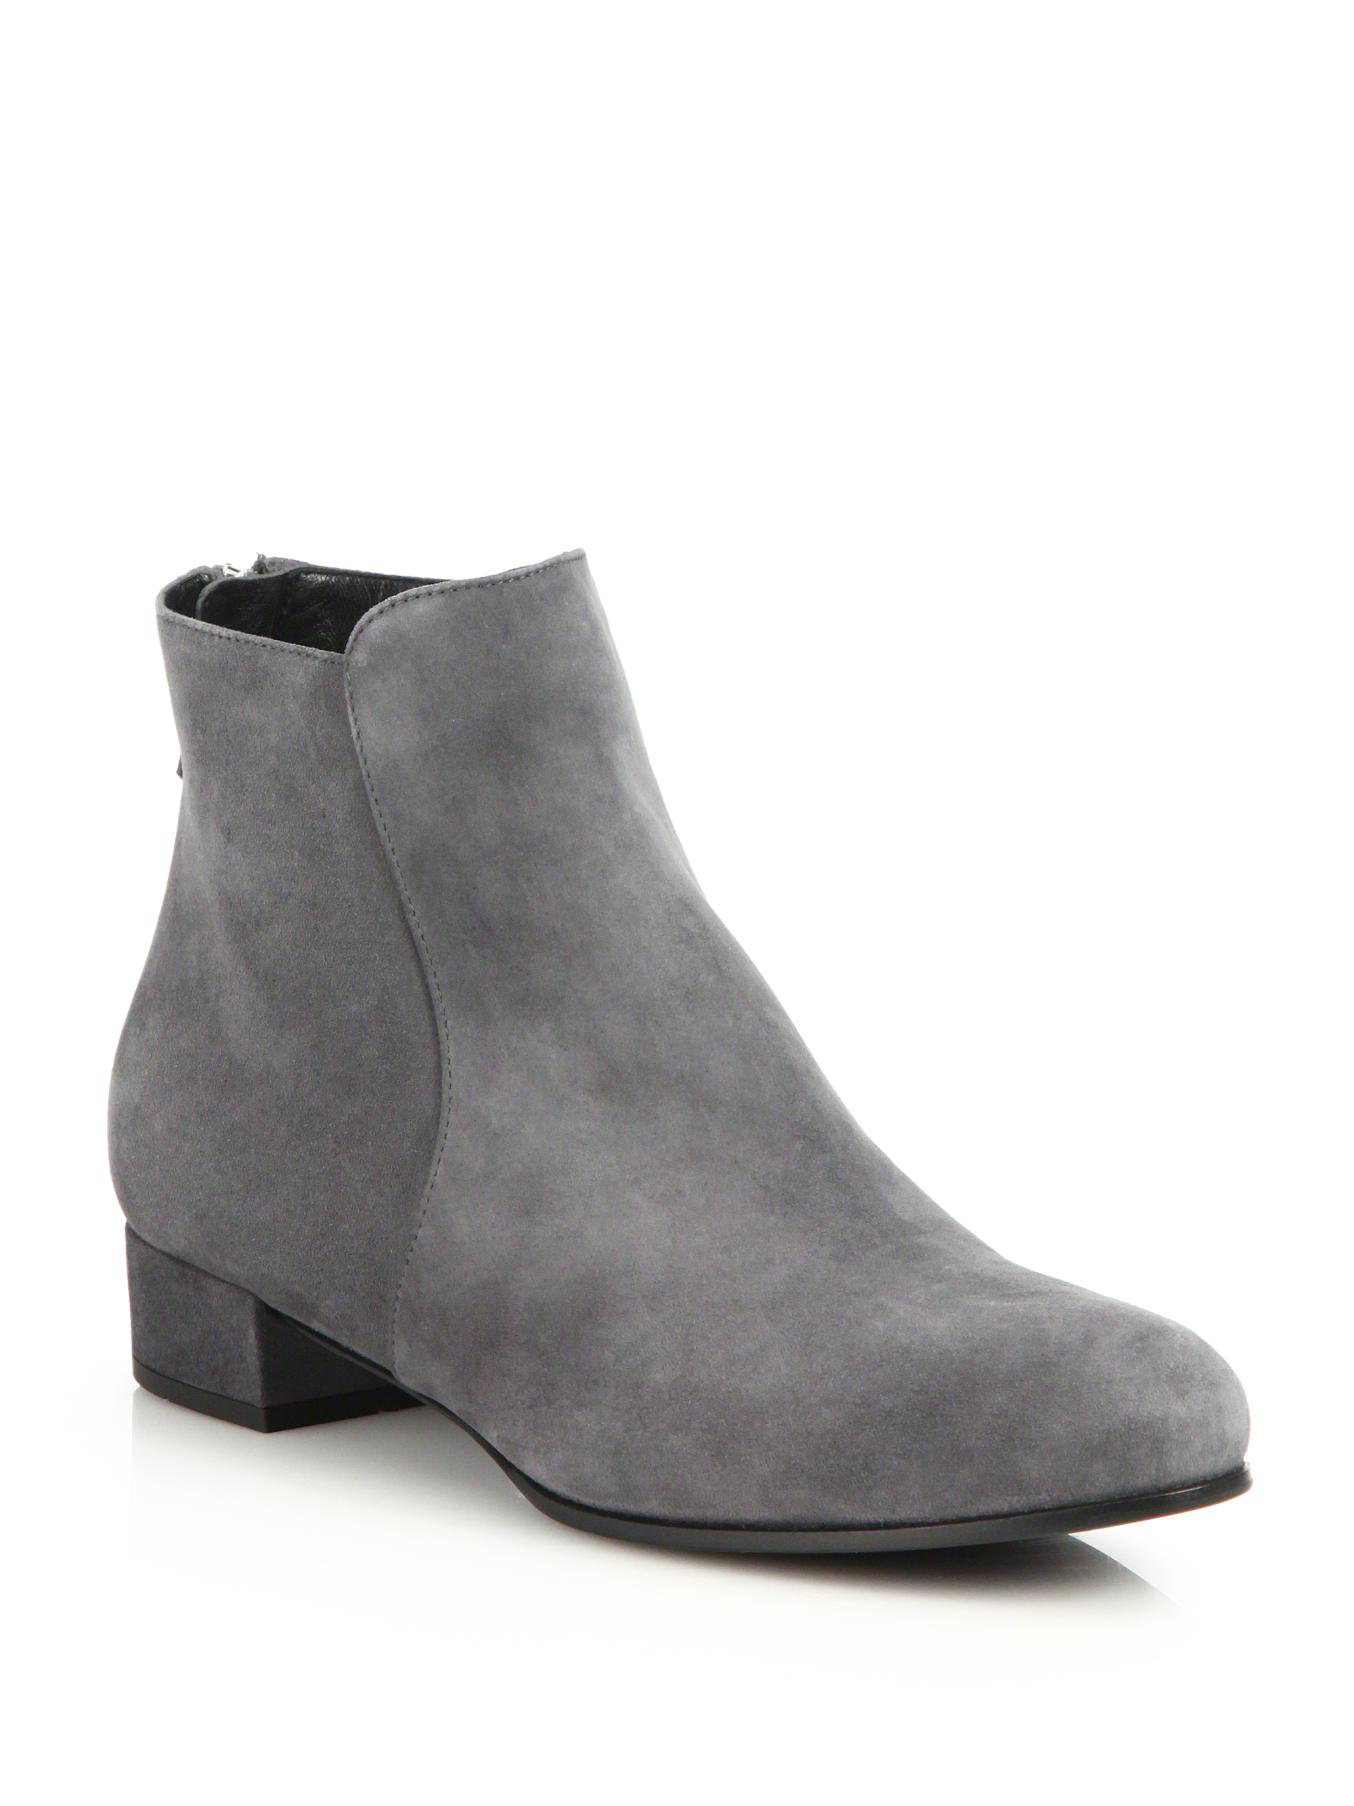 Prada Suede Flat Ankle Boots in Gray | Lyst